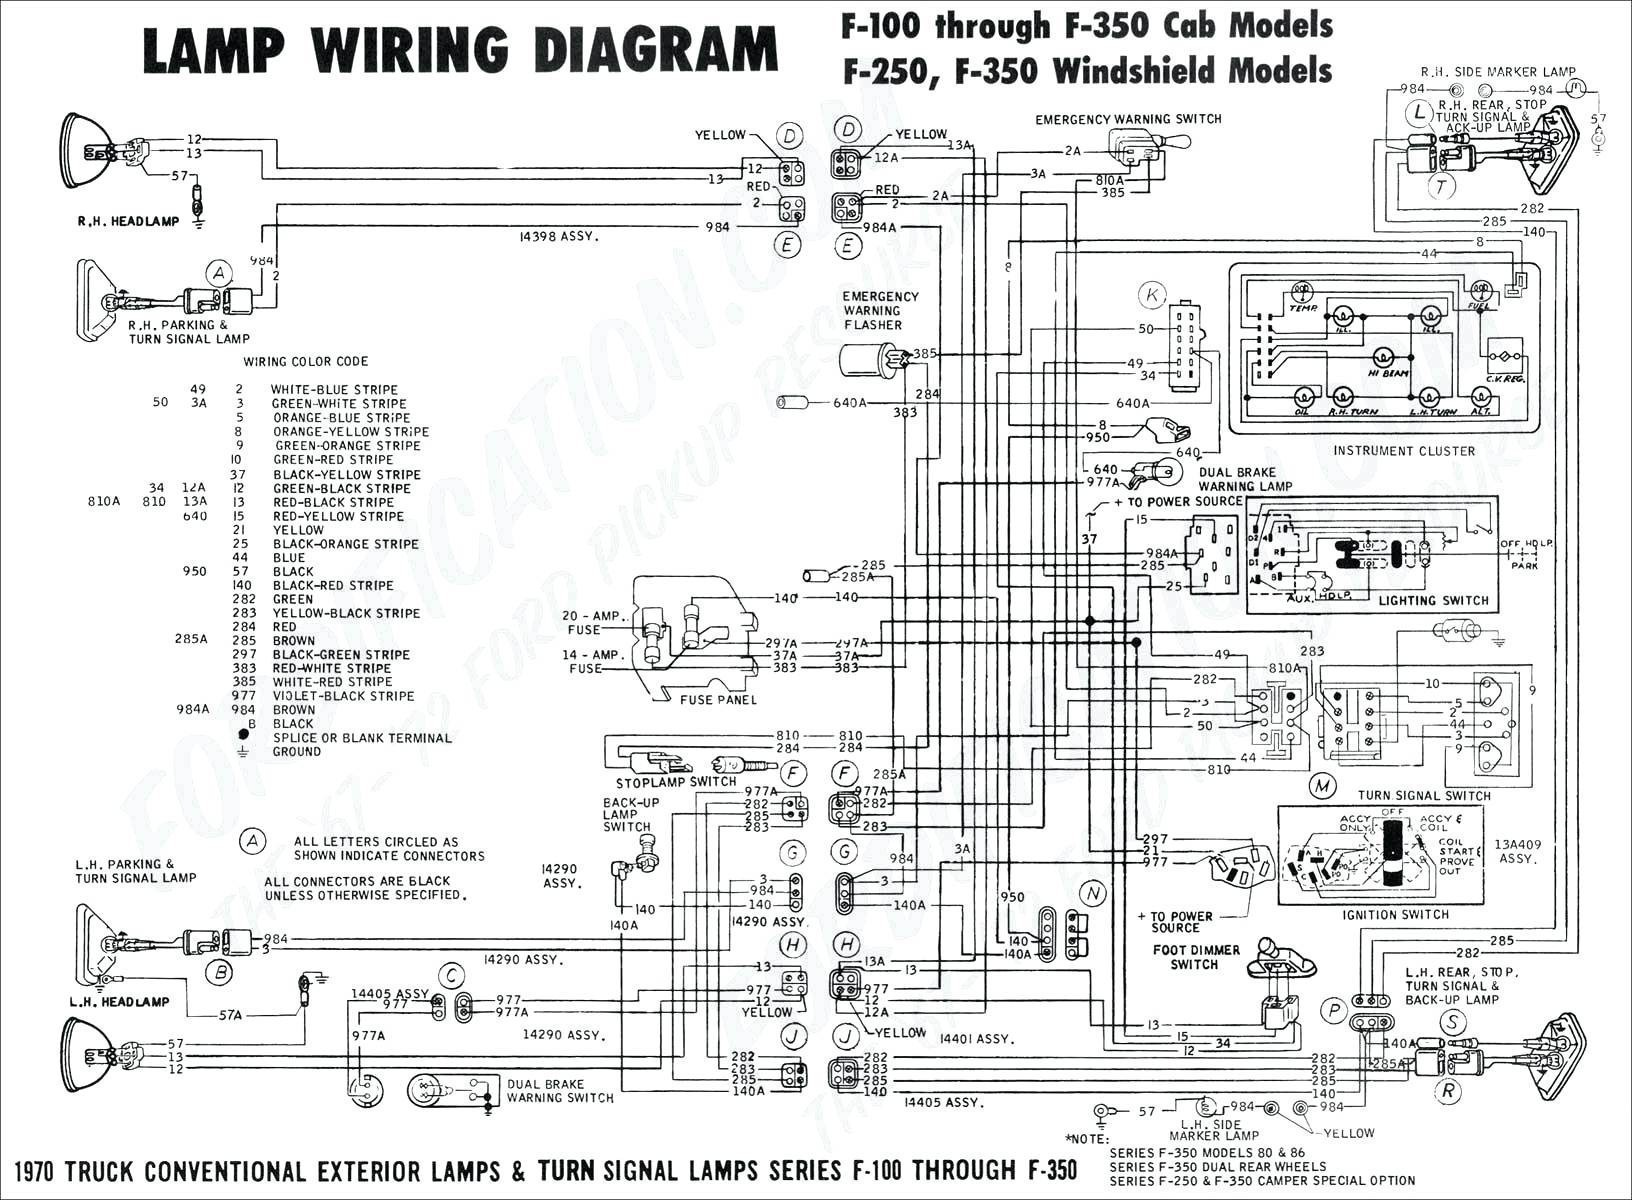 Wiring Diagram for Turn Signals Circuit Diagram Pulse Generator Best Wiring Diagram for A Generator Of Wiring Diagram for Turn Signals